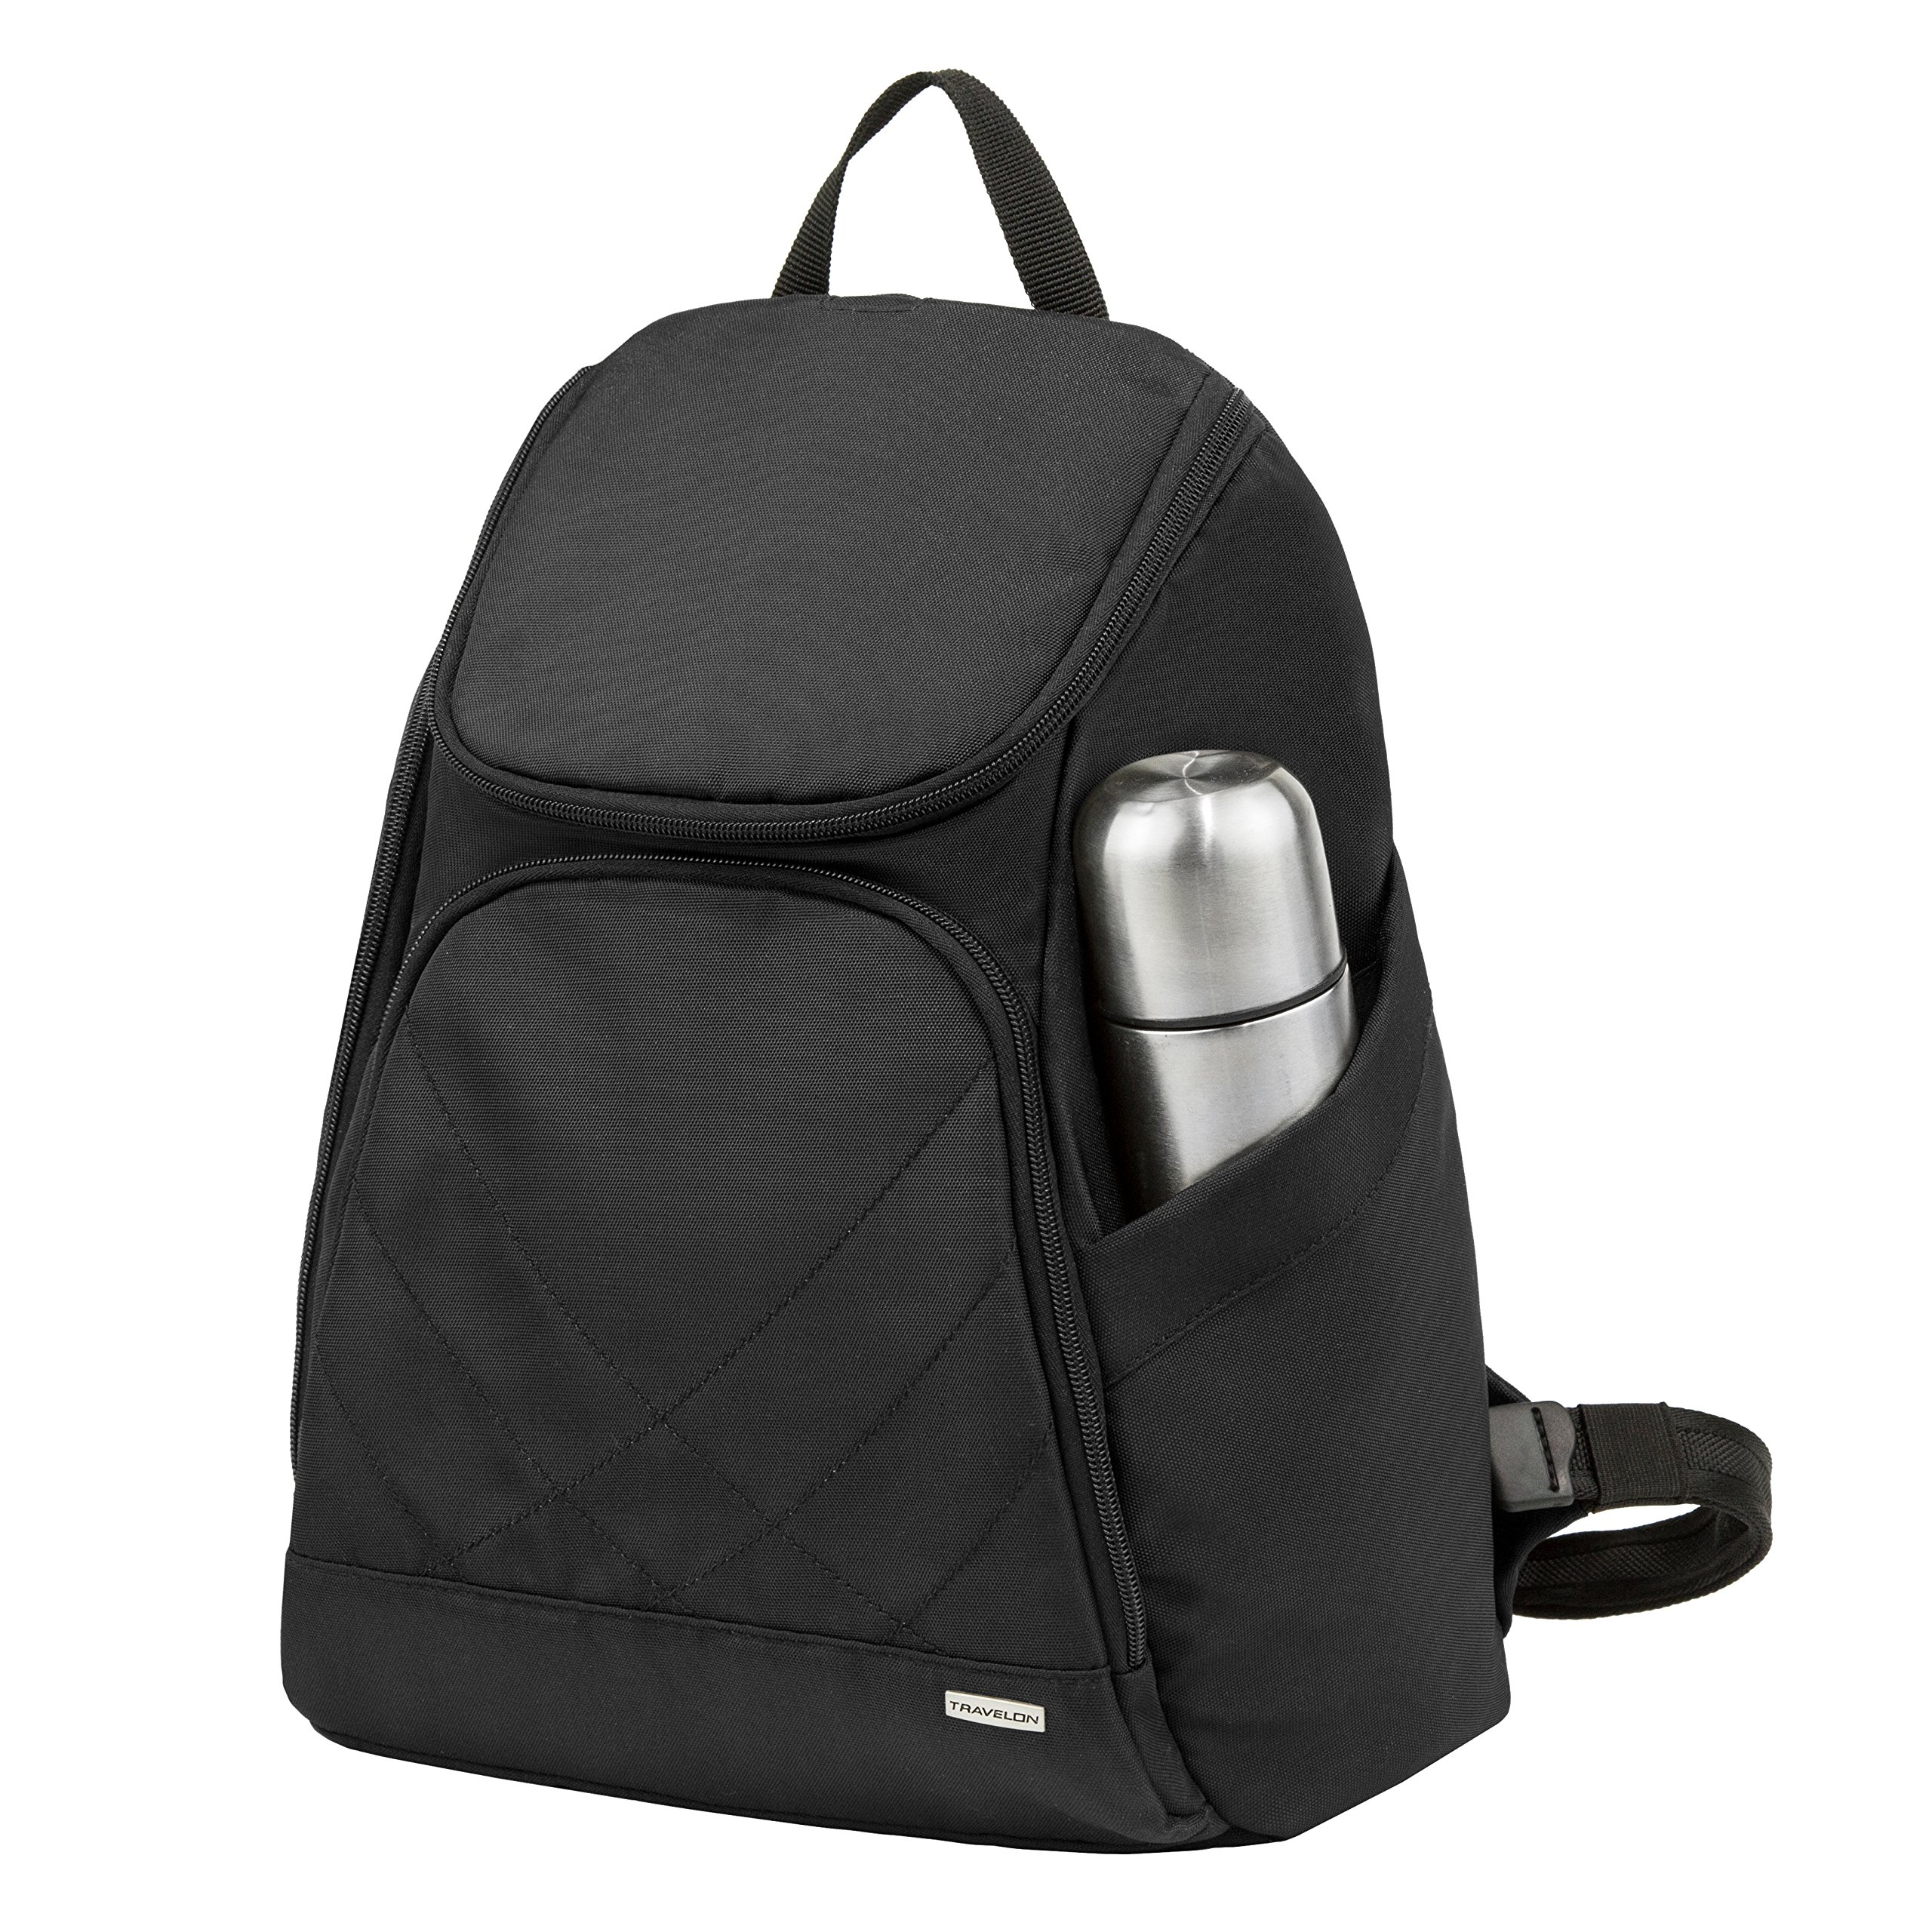 Travelon Backpack,Black,One Size by Travelon